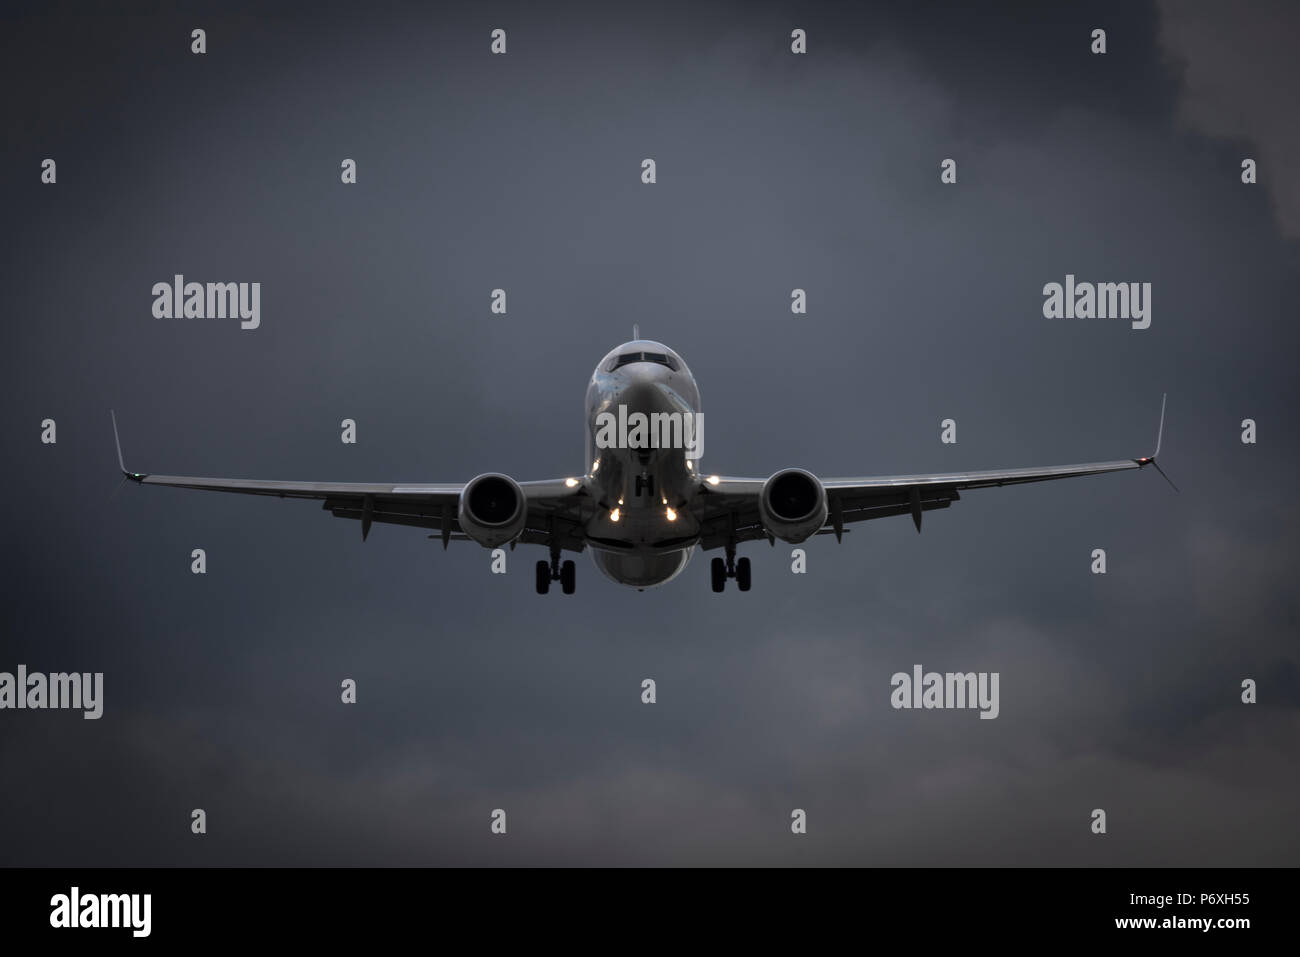 Commercial jetliner on final approach - facing view - Stock Image